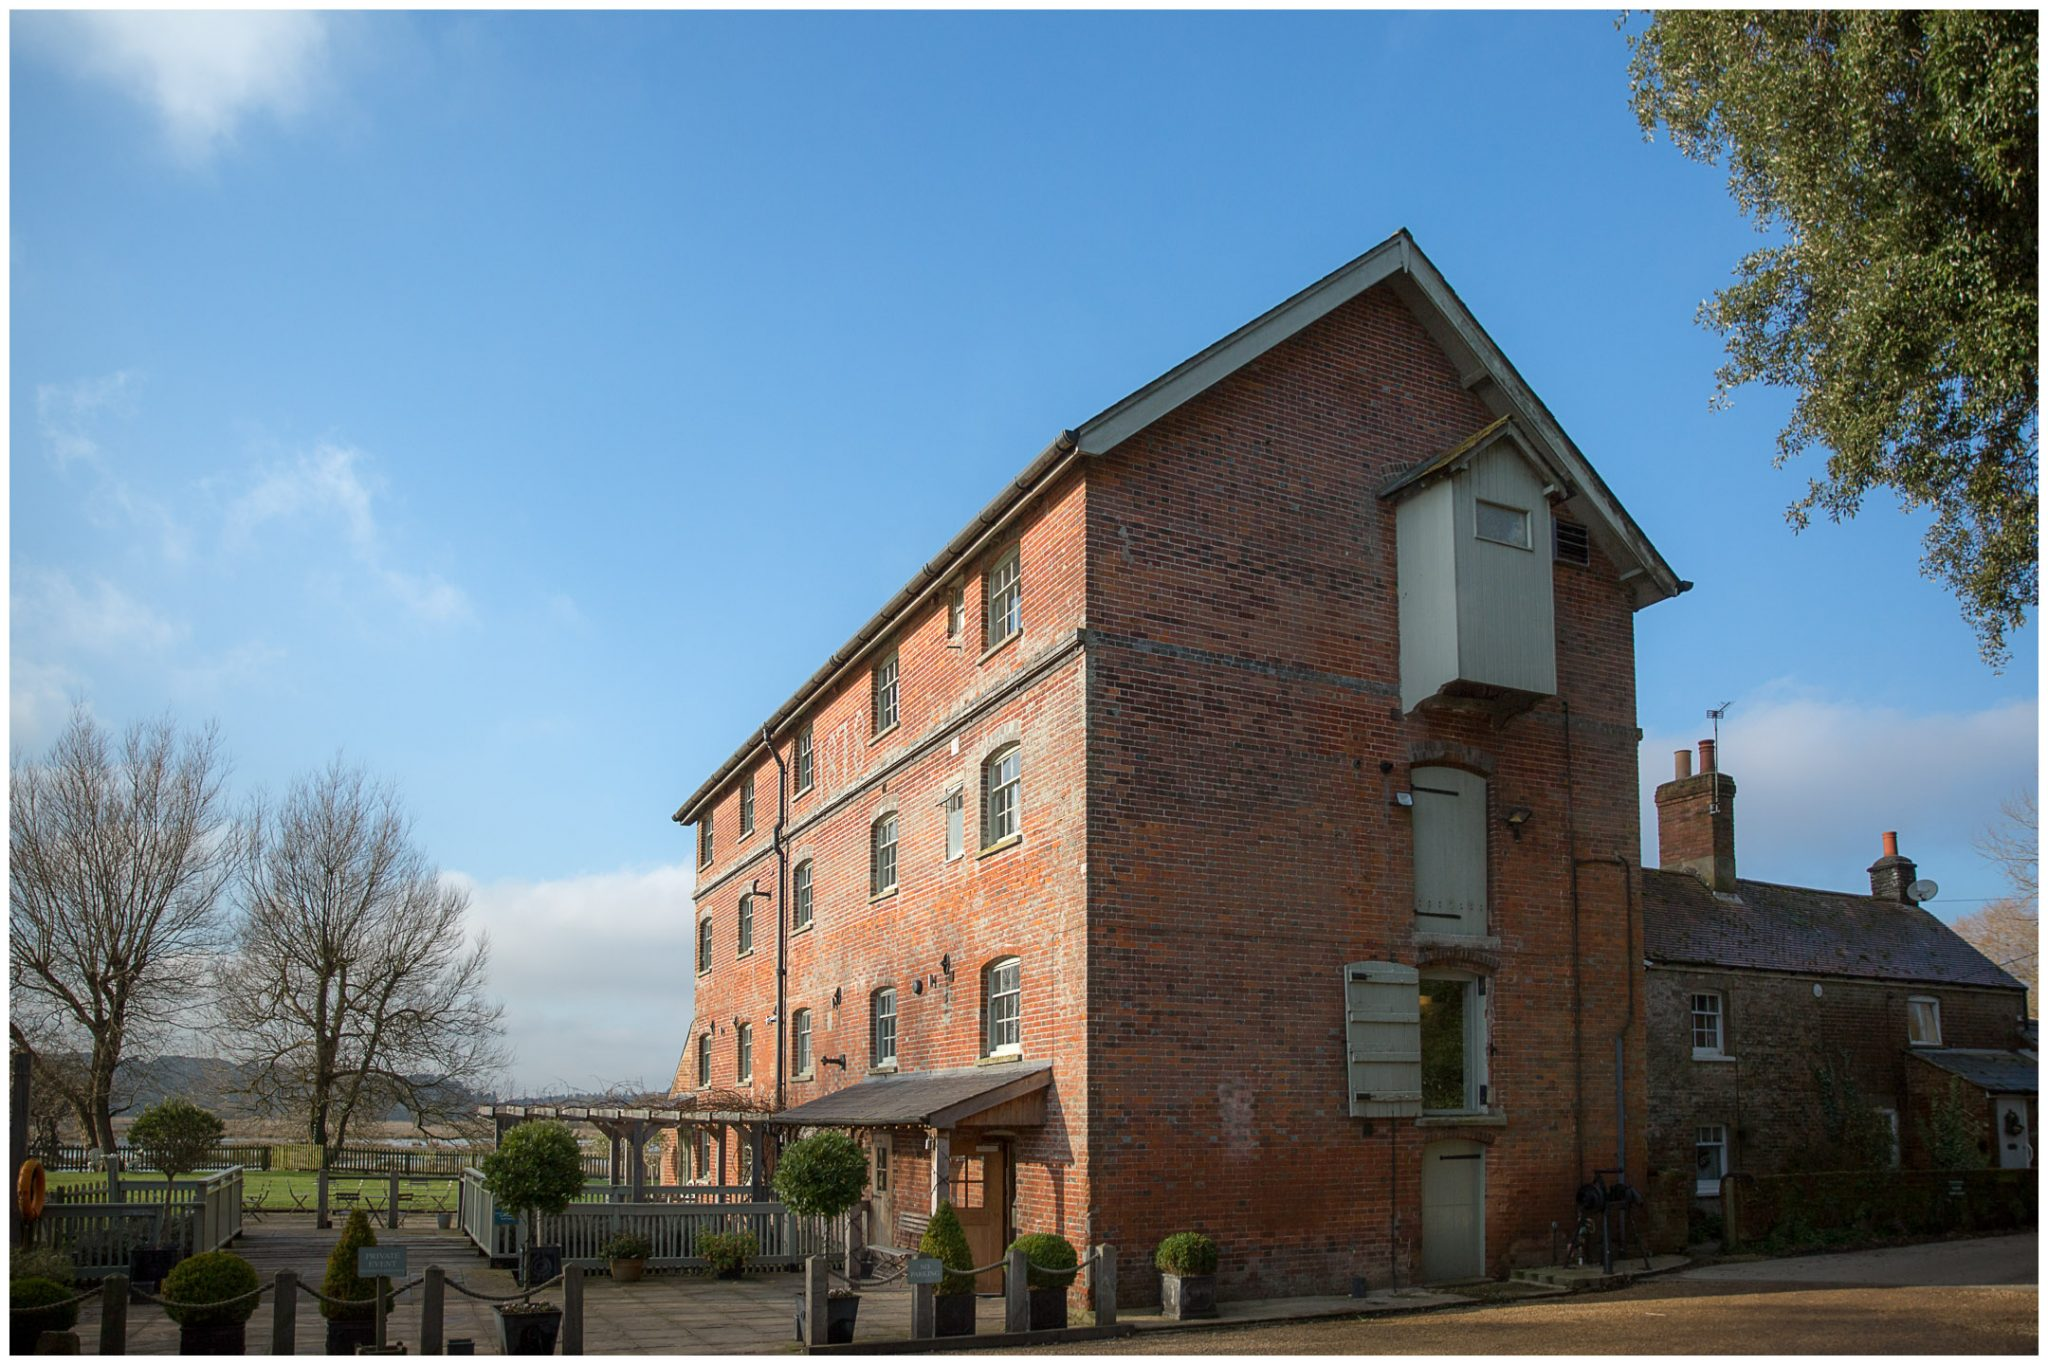 Exterior view of Sopley Mill in the Winter light